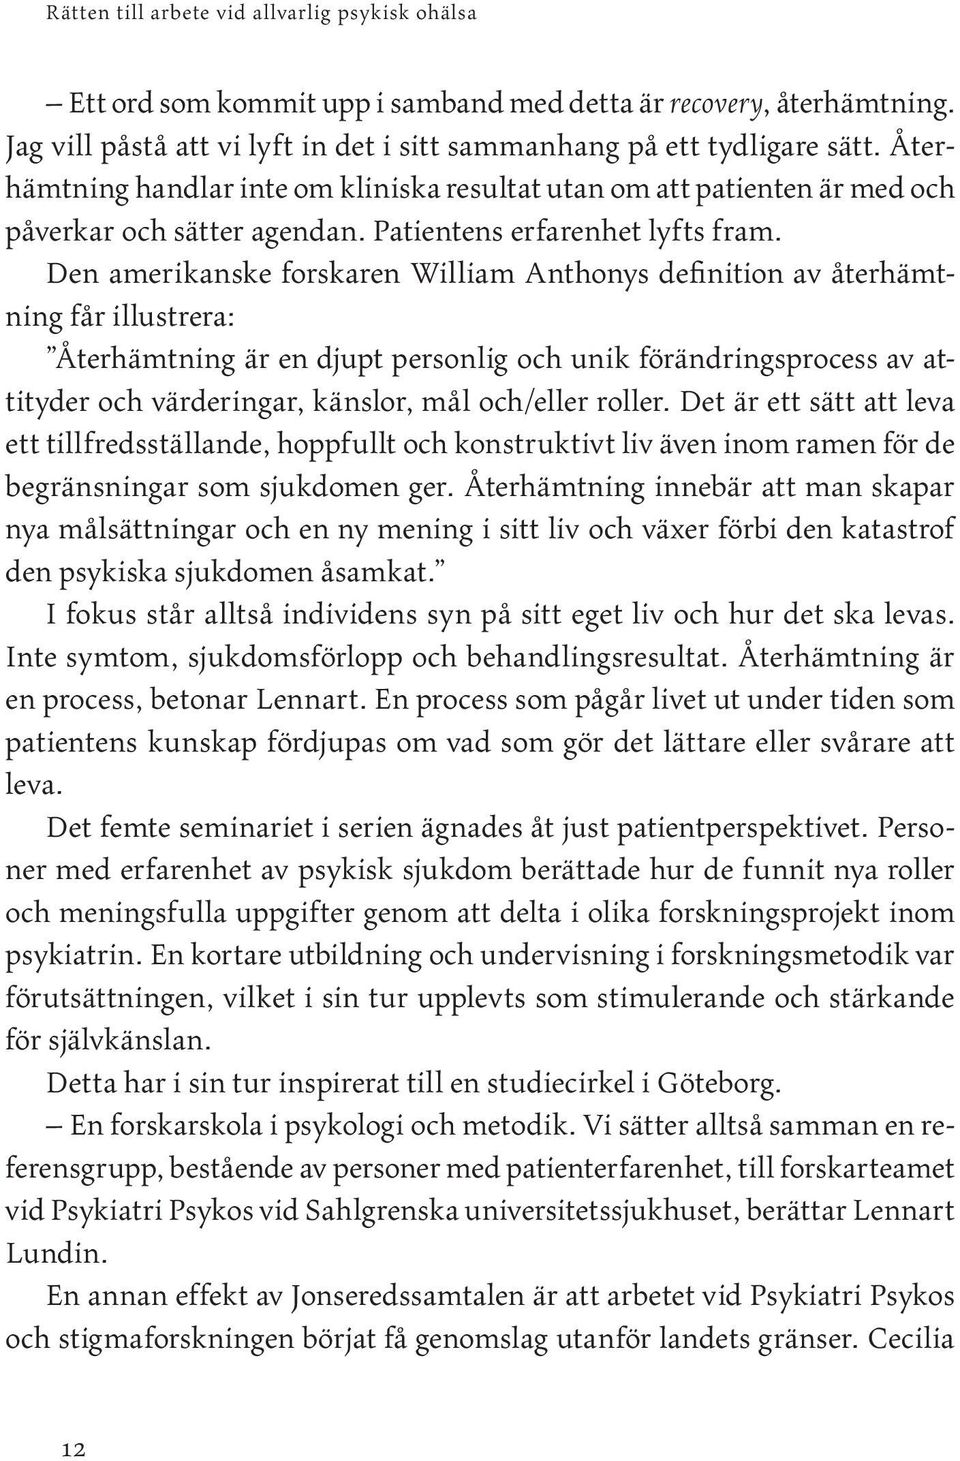 Den amerikanske forskaren William Anthonys definition av återhämtning får illustrera: Återhämtning är en djupt personlig och unik förändringsprocess av attityder och värderingar, känslor, mål